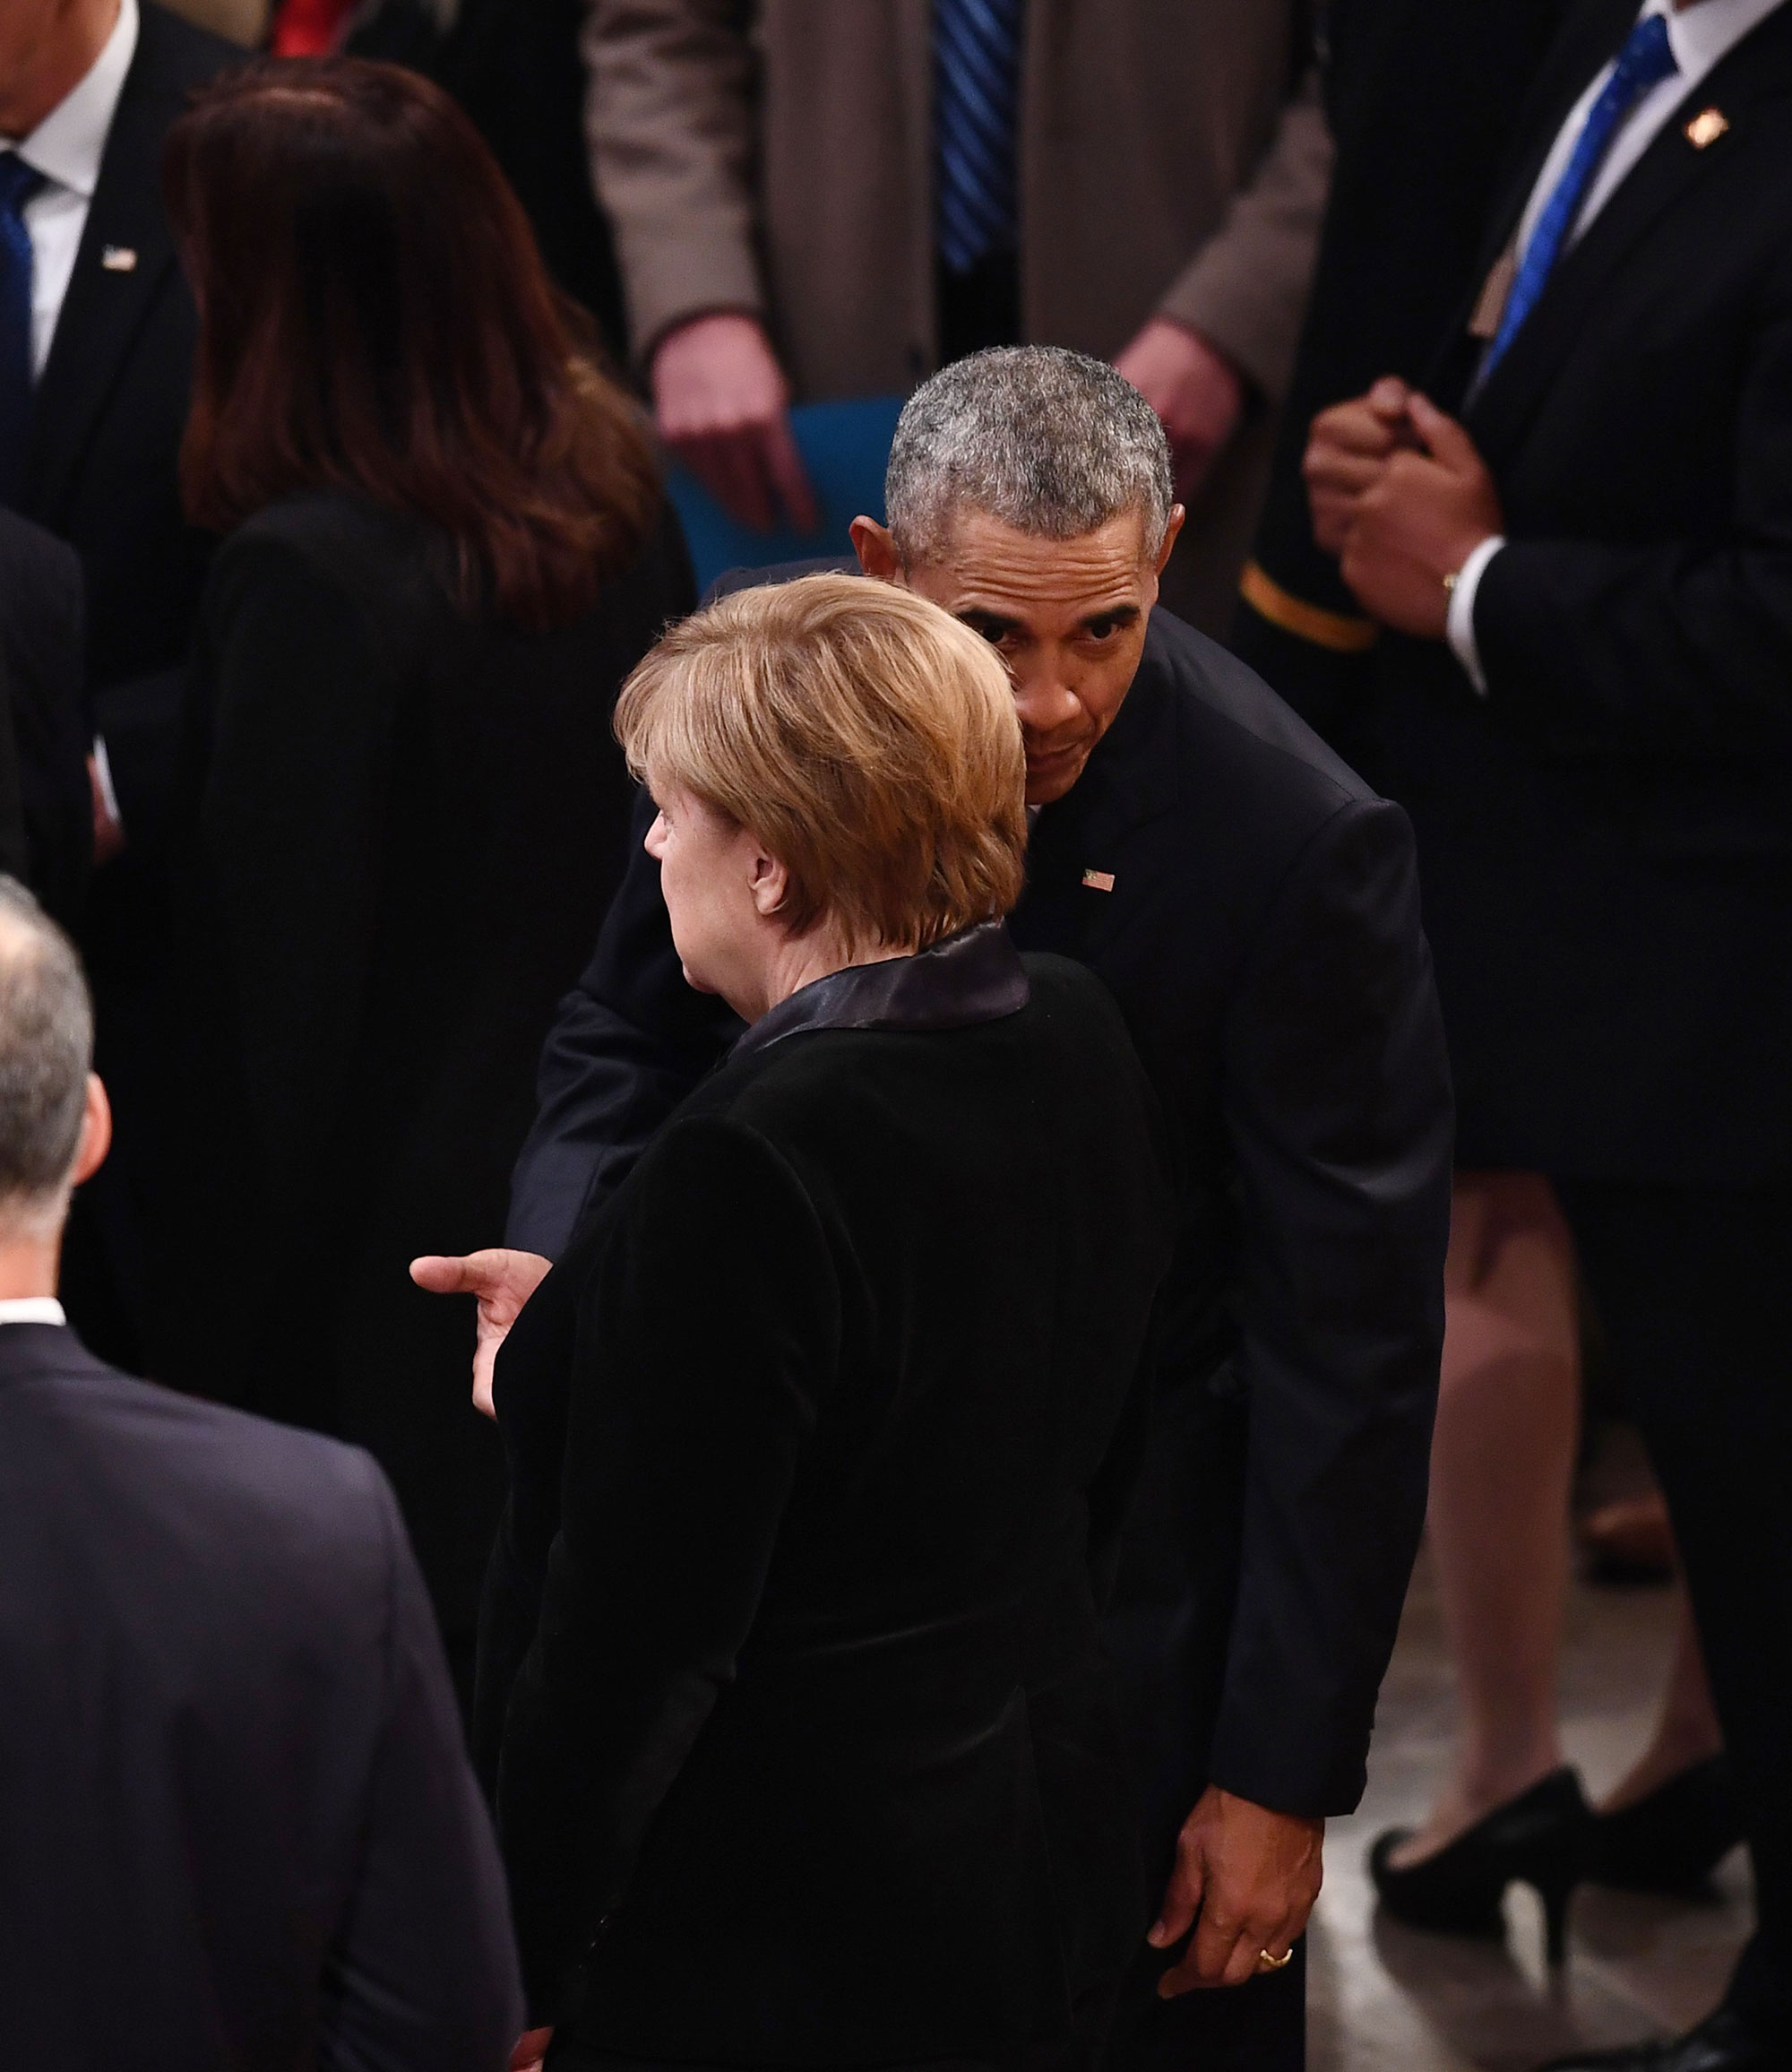 "<div class=""meta image-caption""><div class=""origin-logo origin-image none""><span>none</span></div><span class=""caption-text"">German Chancellor Angela Merkel speaks with former US President Barack Obama as they arrive for the funeral service for former US President George H. W. Bush. (BRENDAN SMIALOWSKI/AFP/Getty Images)</span></div>"